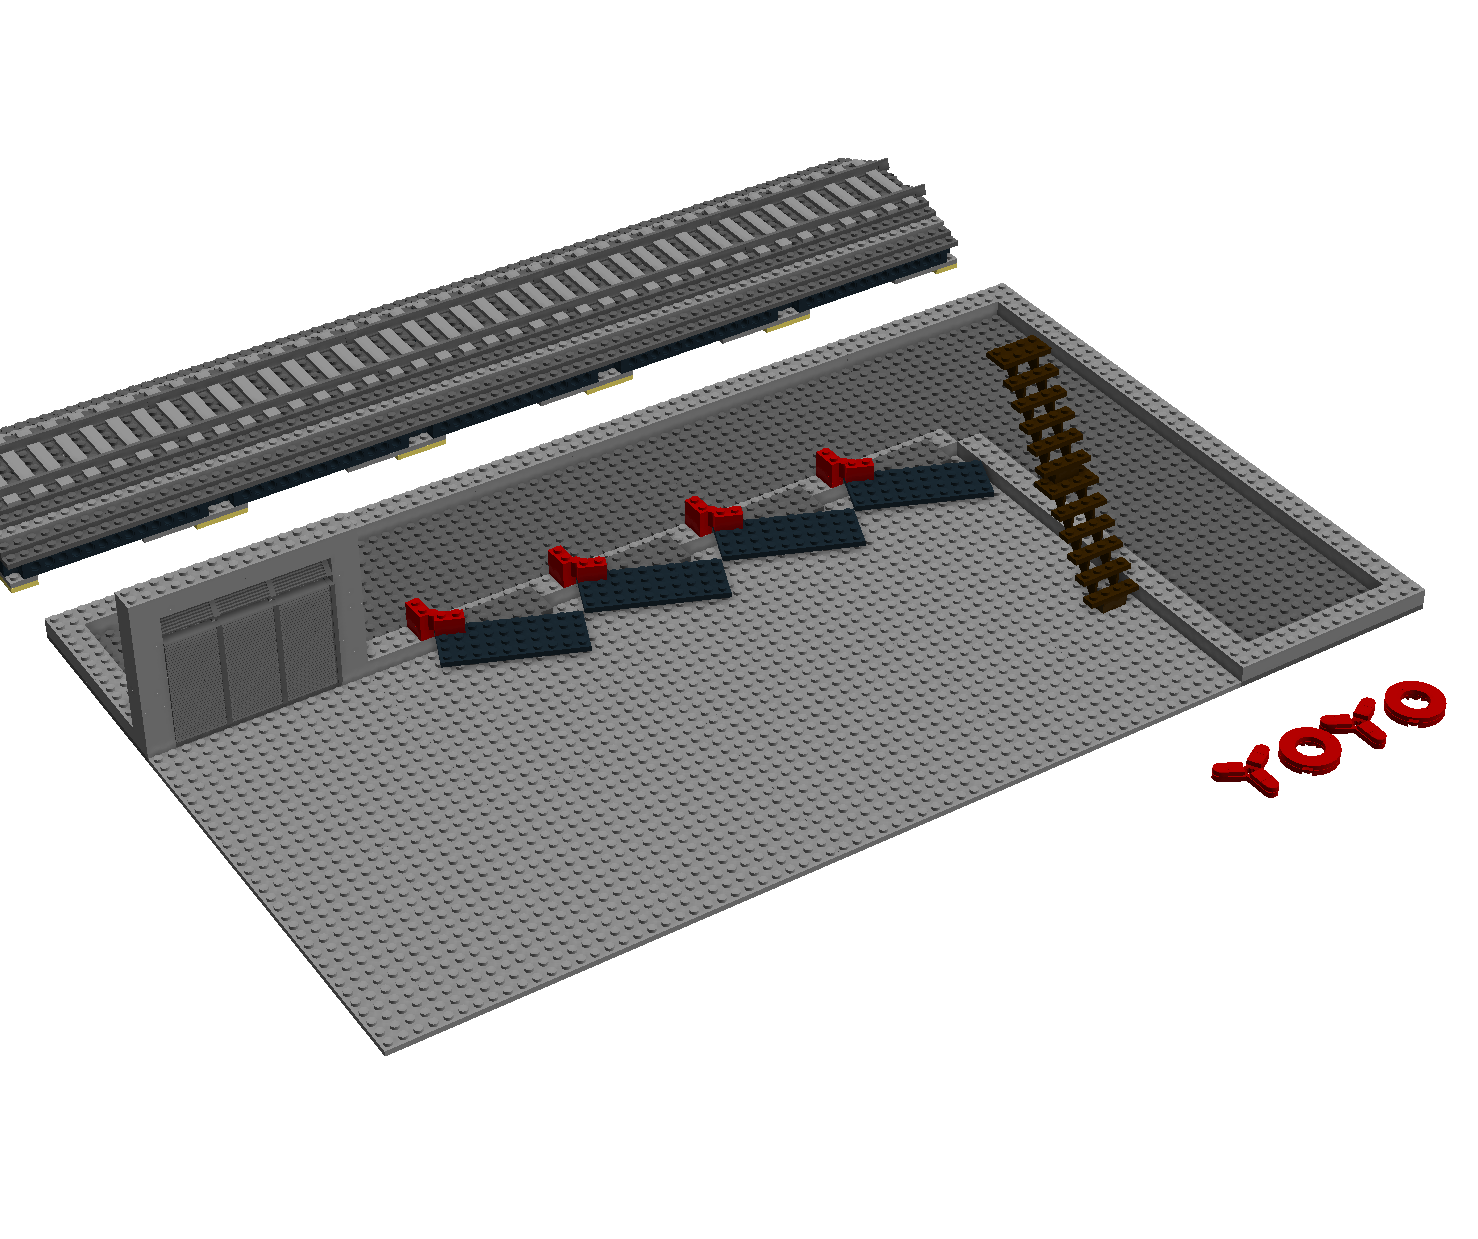 I experimented with making the docking terminals at an angle to save space.